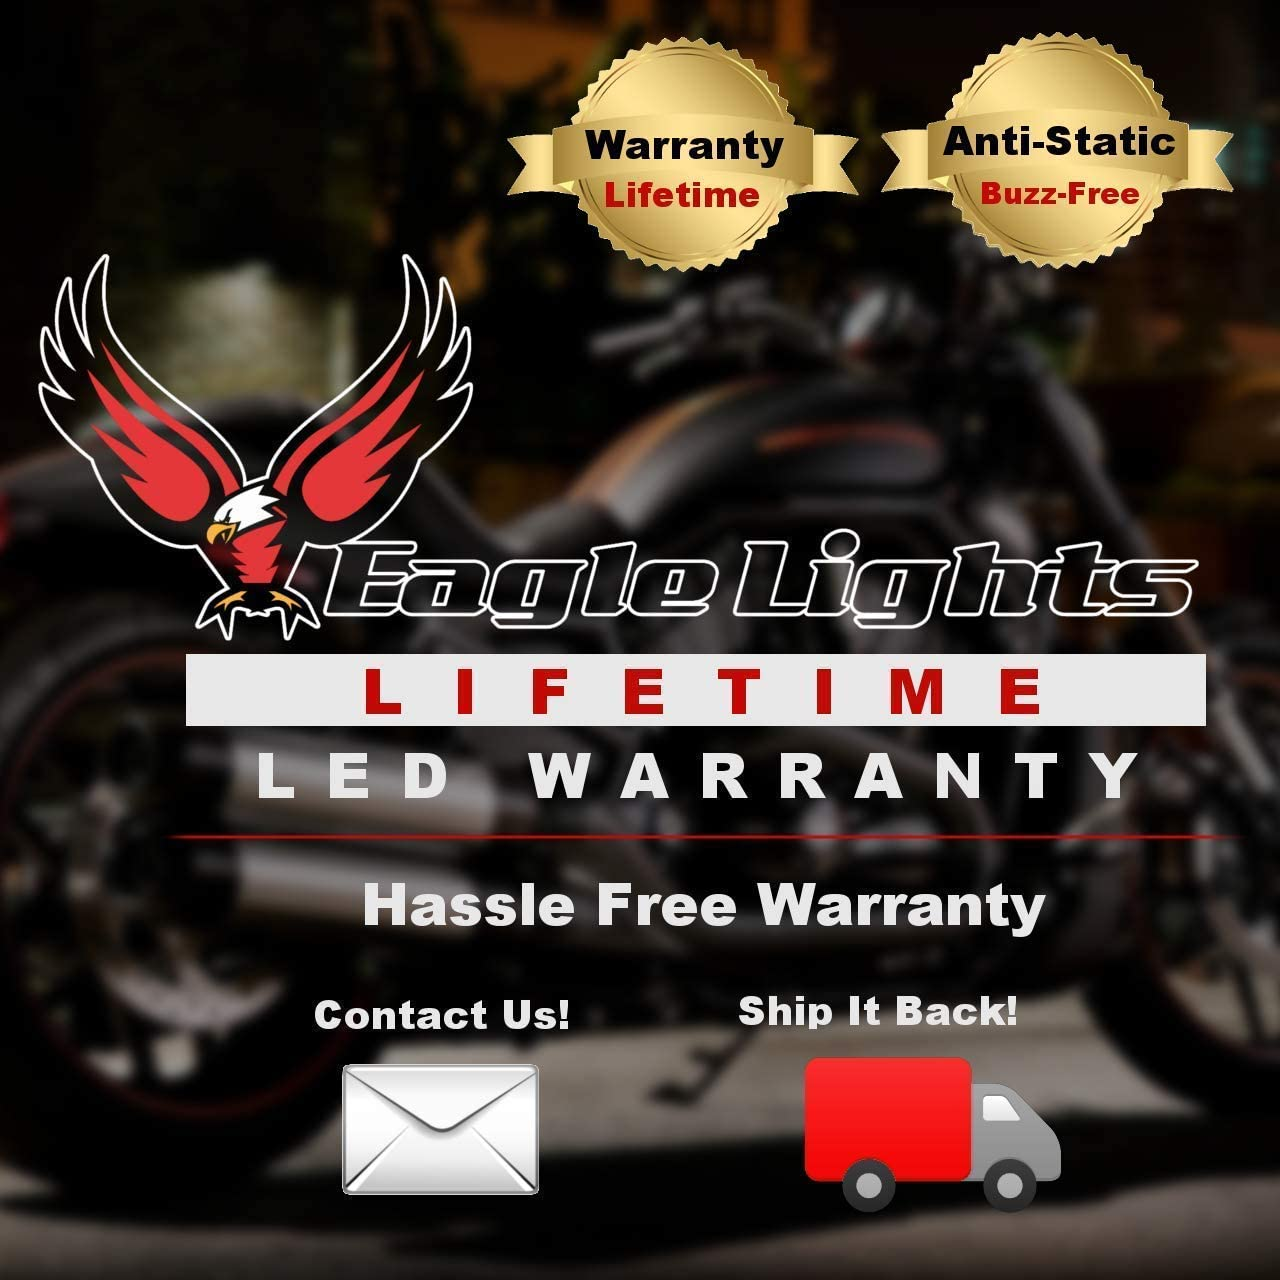 Black Adapter Harness Eagle Lights 9100B-897 7 inch LED Headlight with Halo Ring for Harley Davidson Motorcycles with 2014